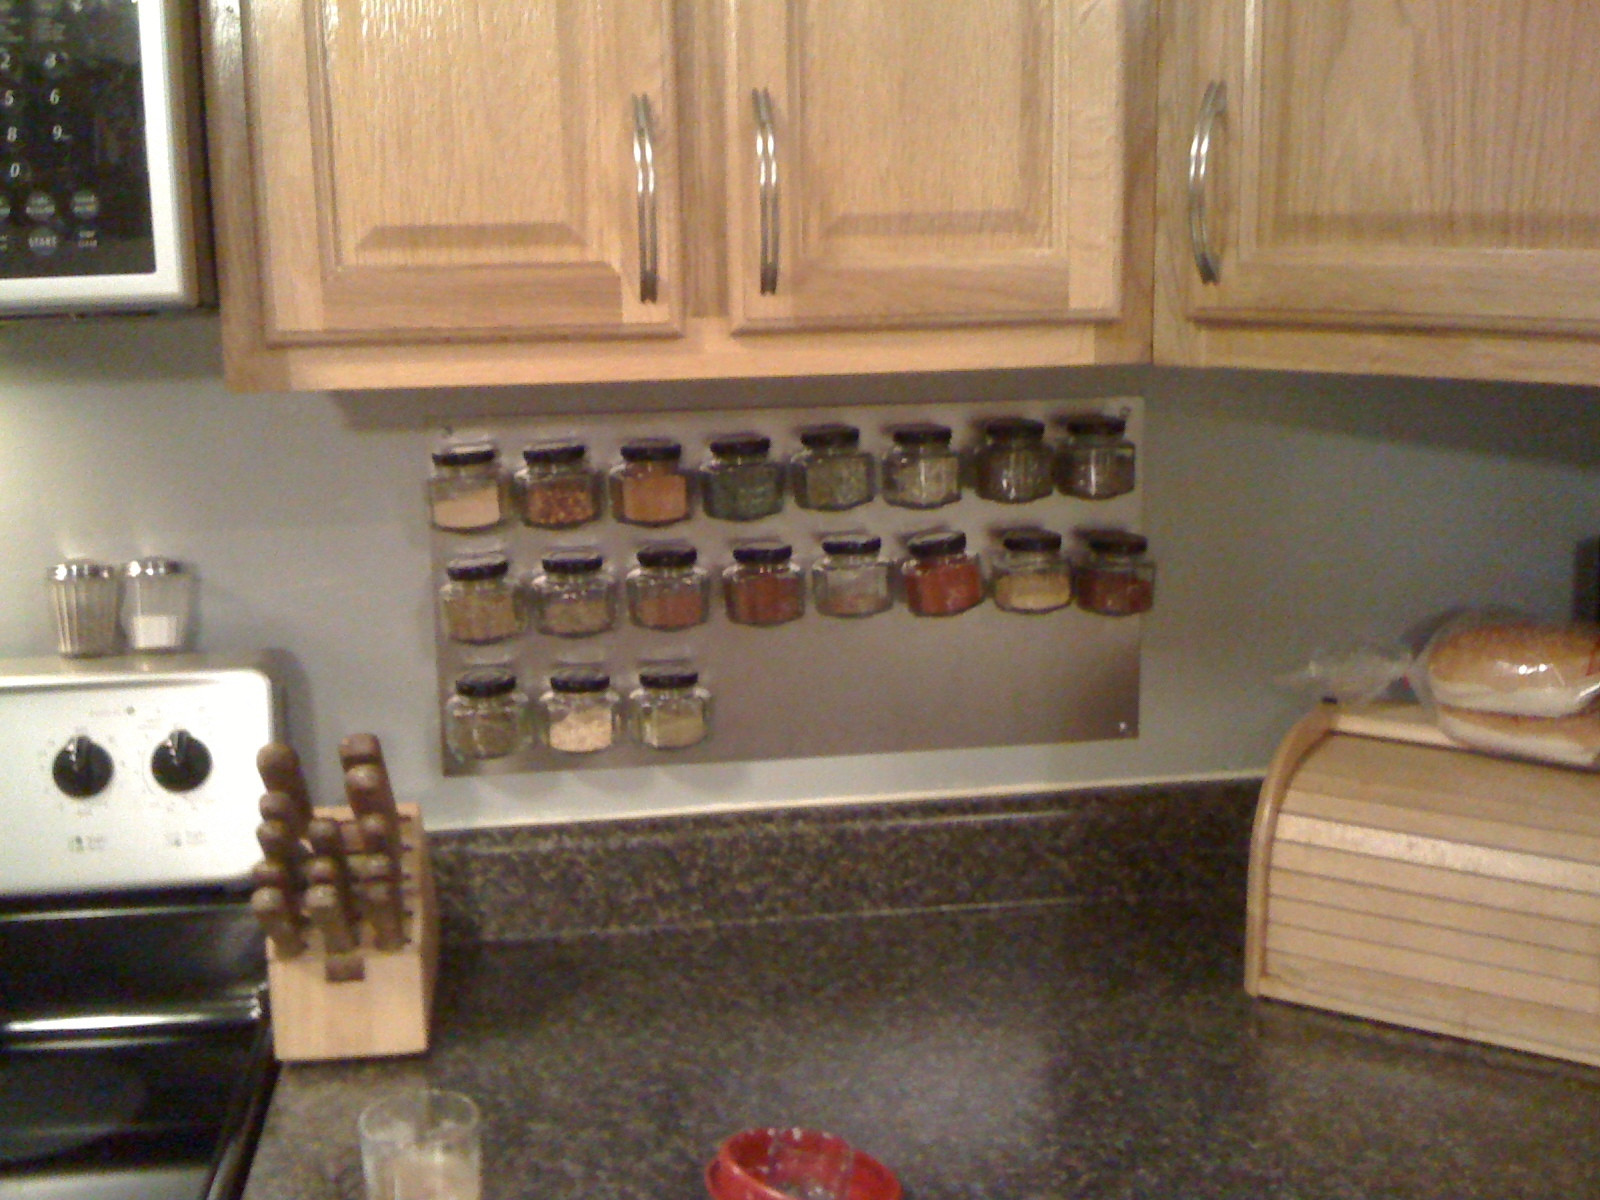 Best ideas about Spice Racks DIY . Save or Pin DIY Magnetic Spice Rack Now.